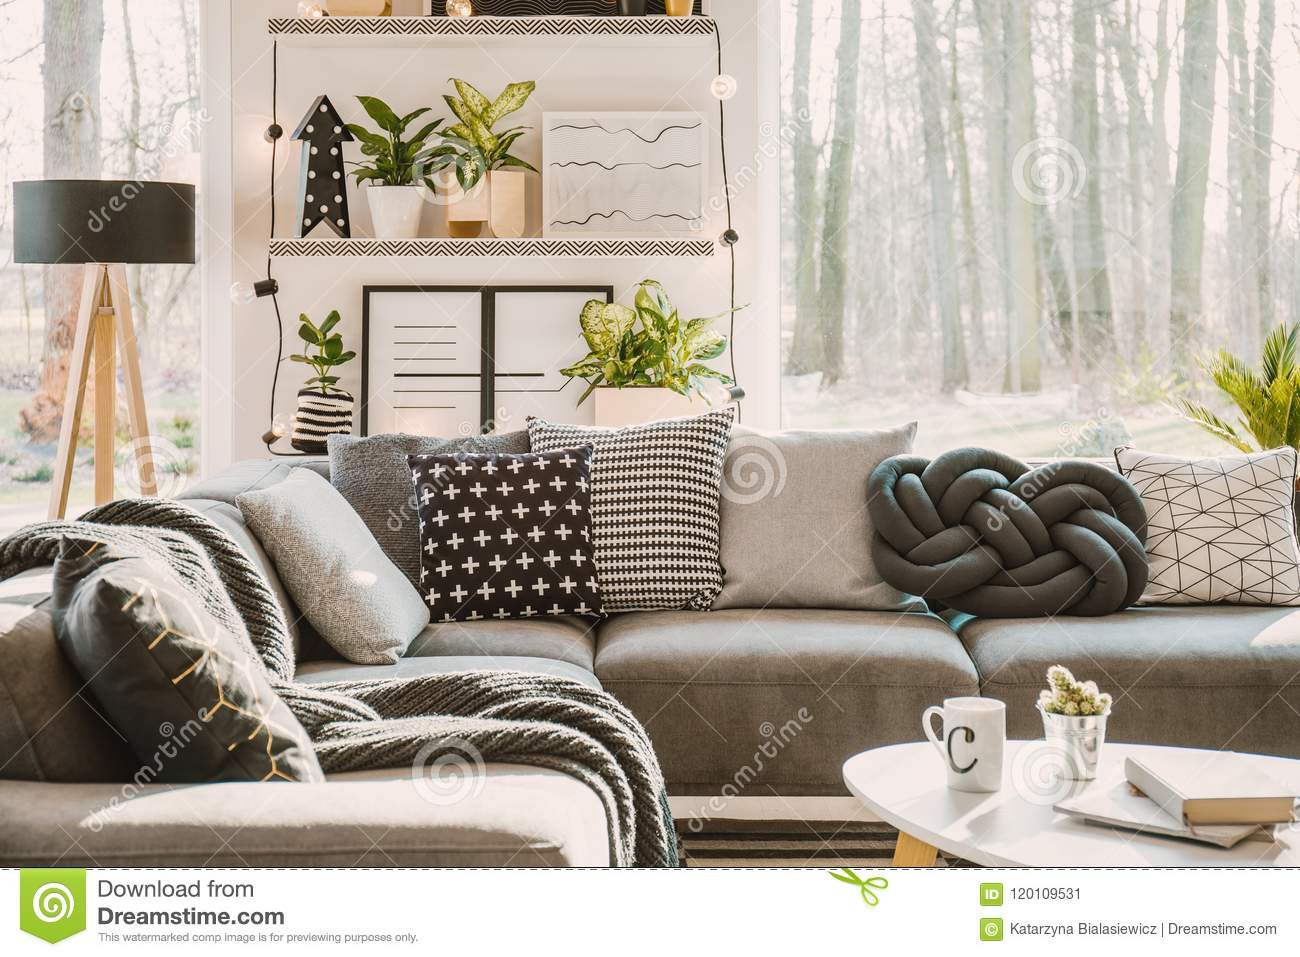 Patterned pillows on grey corner sofa in living room interior with plants lights and window